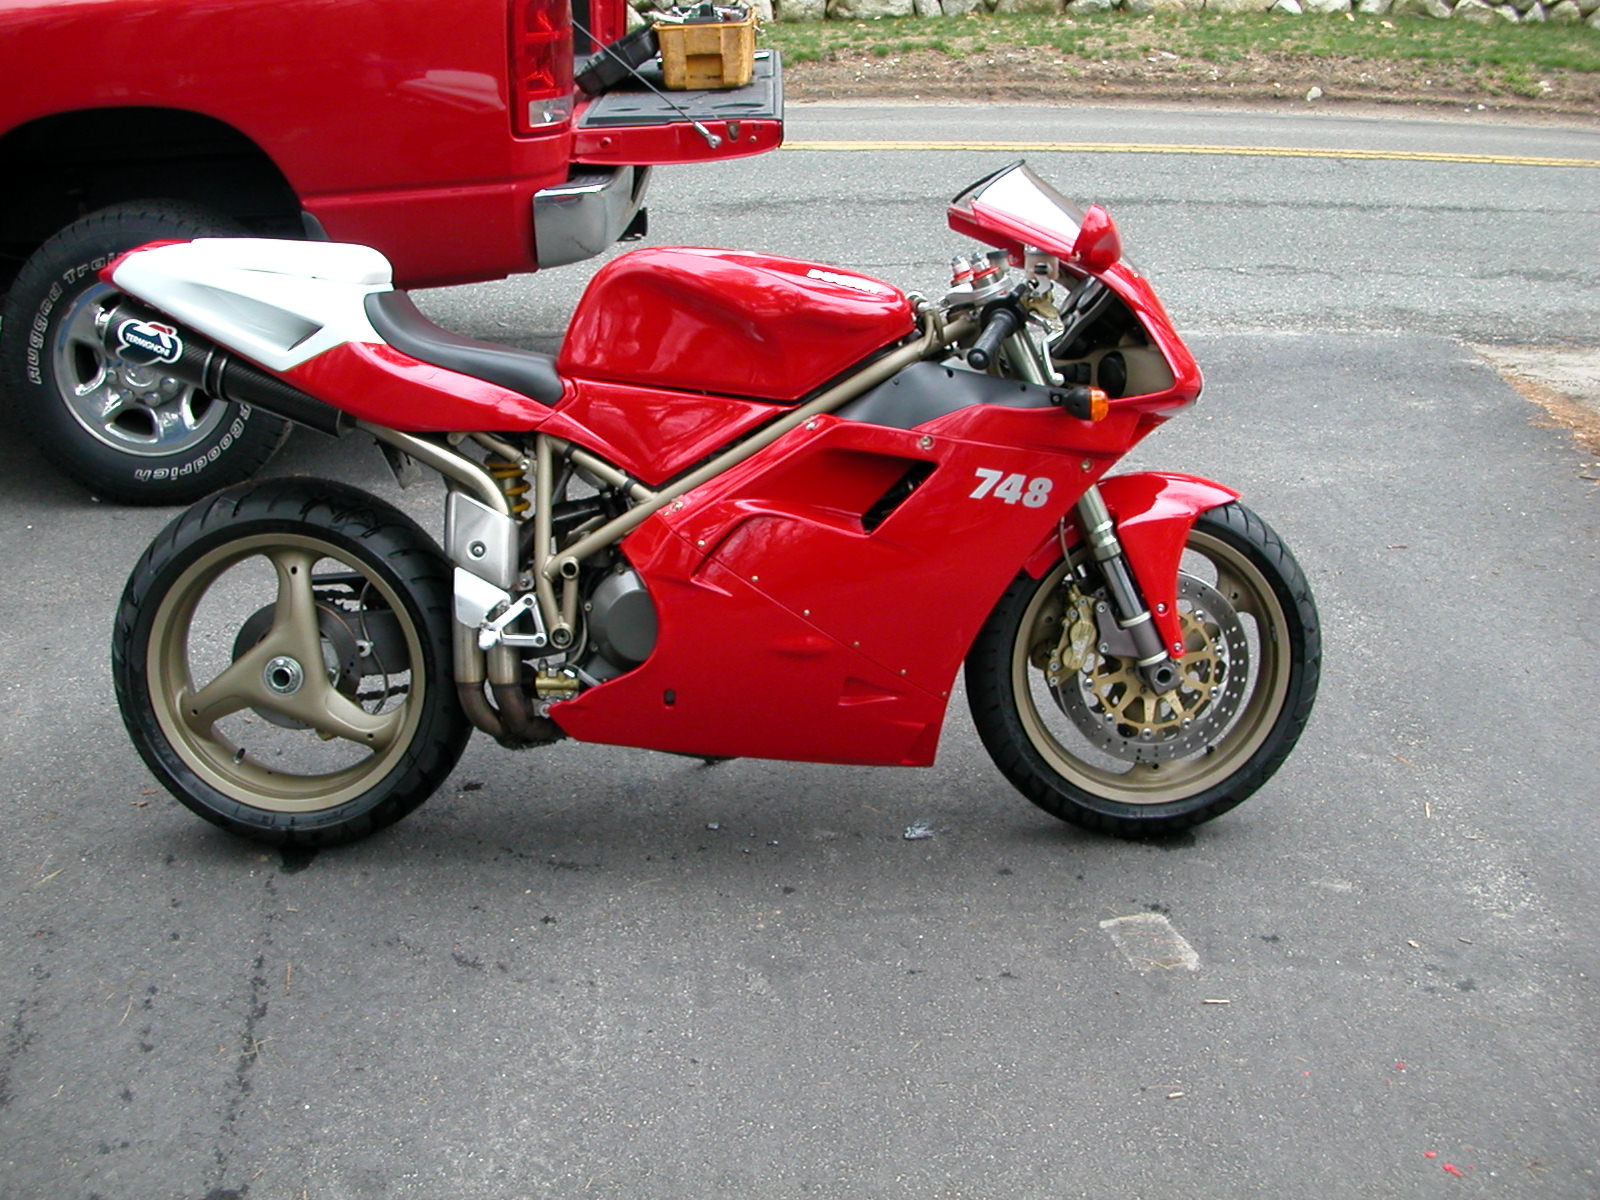 1999 ducati 748s forum the home for ducati owners and enthusiasts. Black Bedroom Furniture Sets. Home Design Ideas